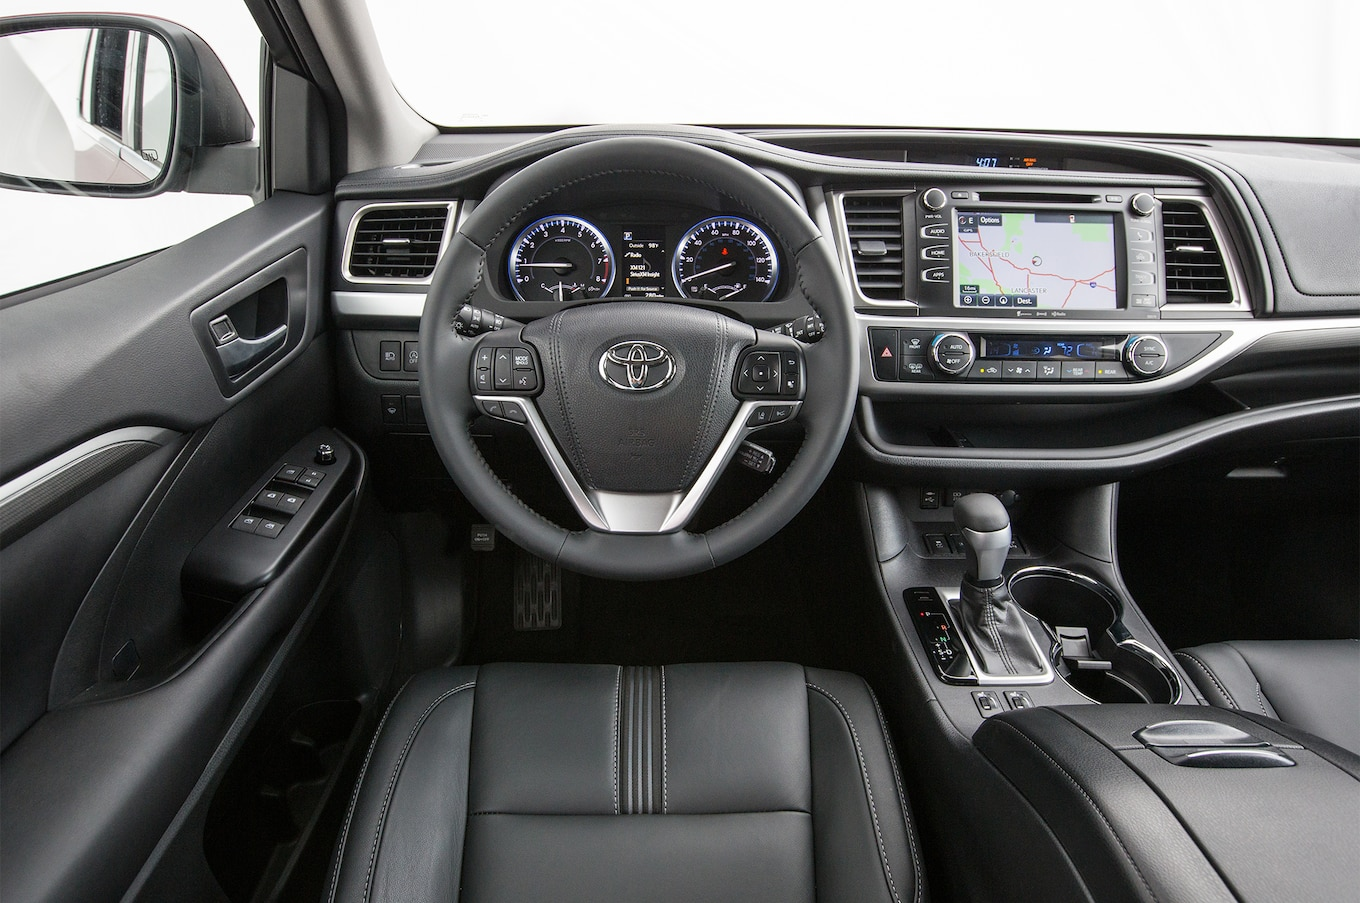 Toyota Highlander SE 2017 Motor Trend SUV of the Year Contender